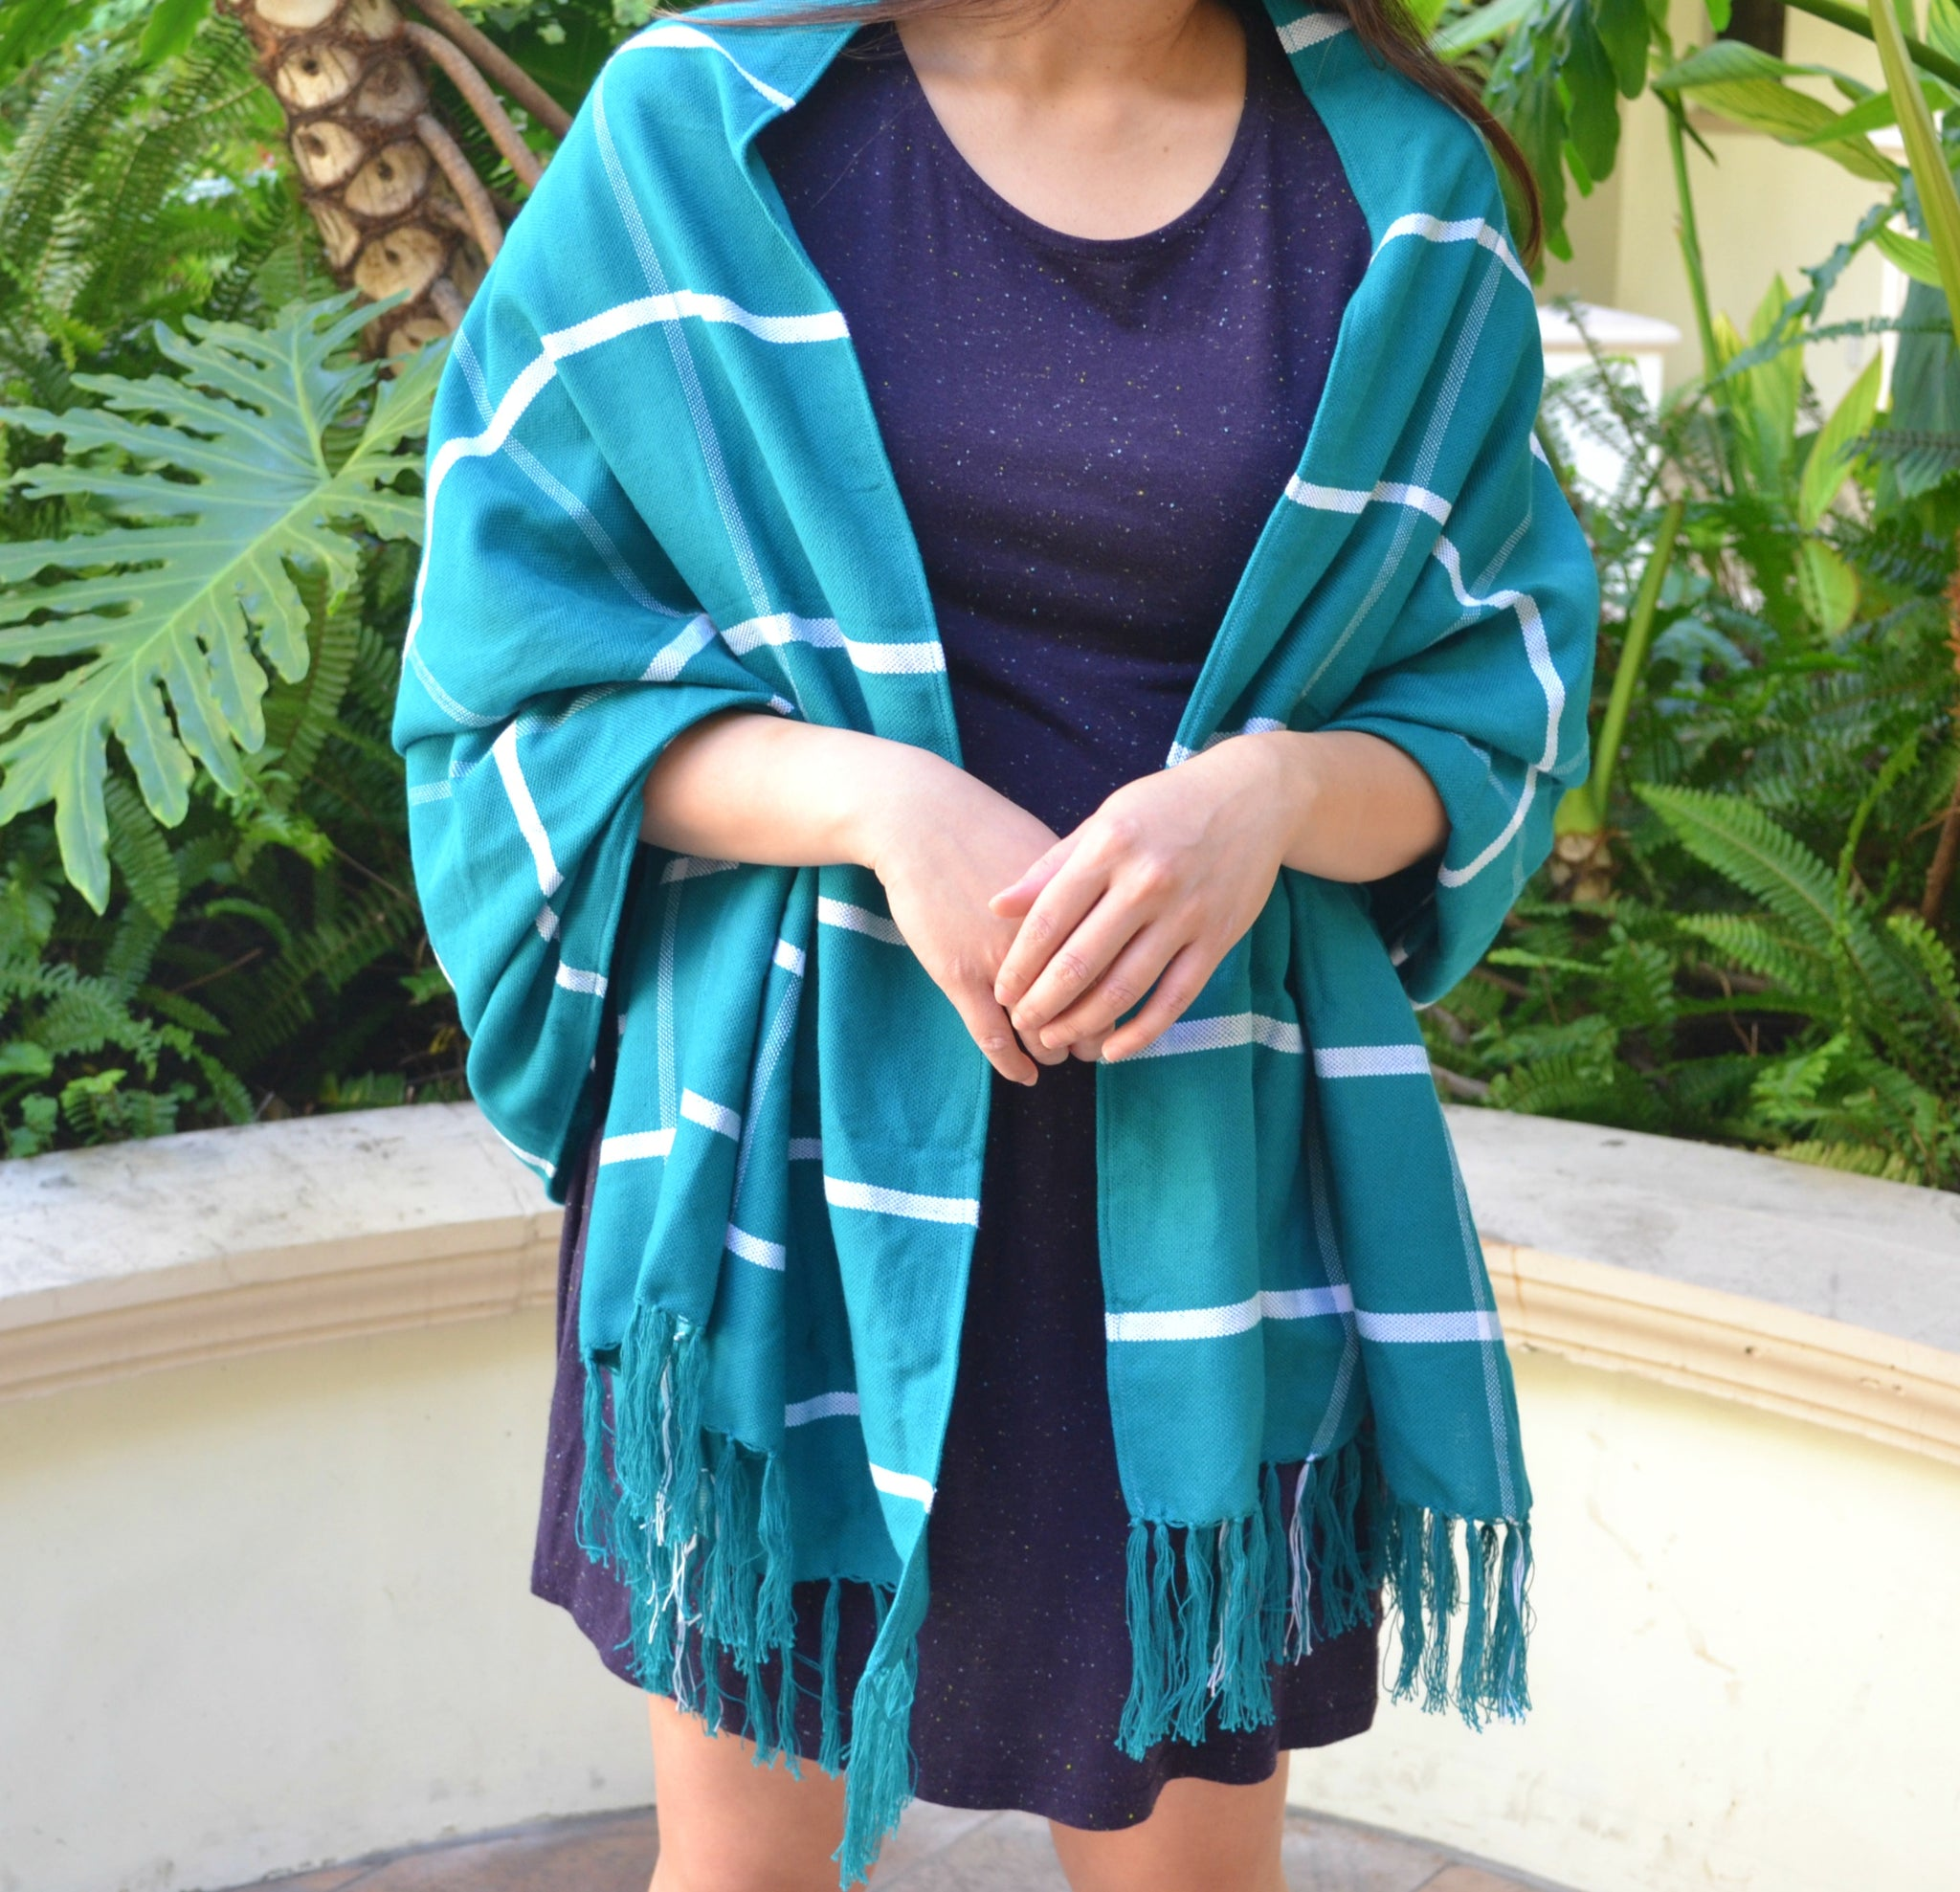 Handwoven Shawl (Teal with White Stripes)